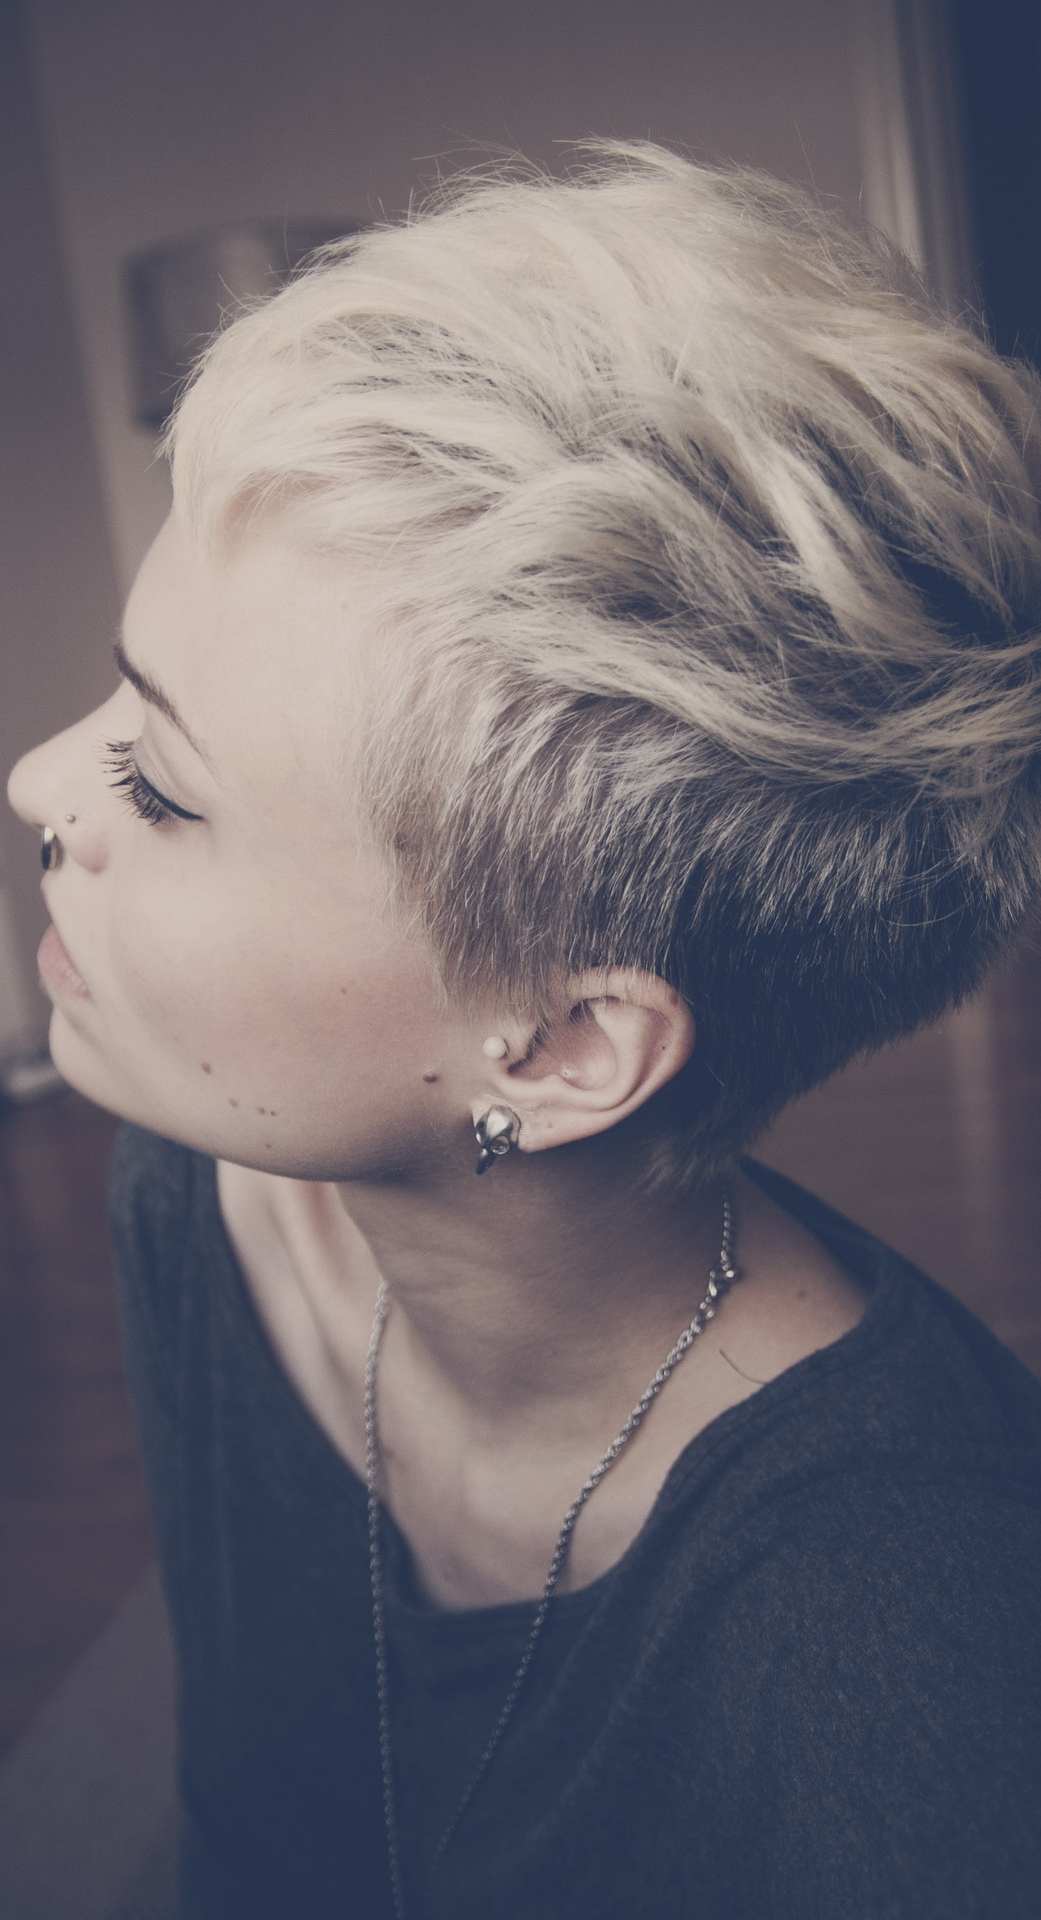 Boyish Pixie Haircut With Fearsome Short Cut Hairstyles Cuts Stock Throughout Latest Pixie Hairstyles With Shaved Sides (View 8 of 15)